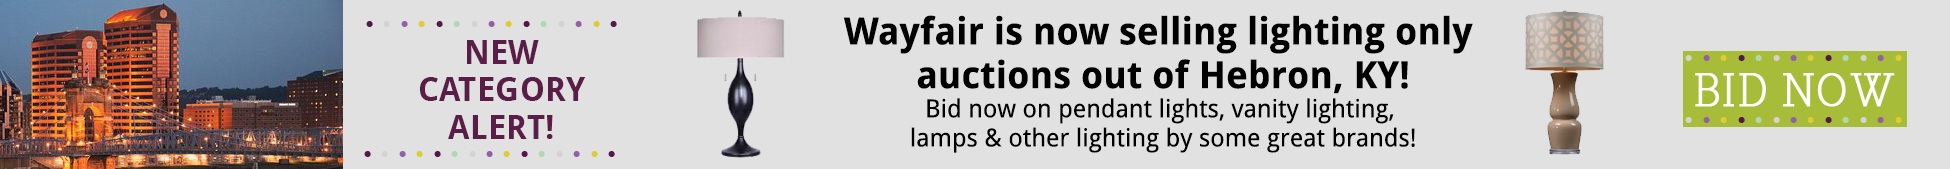 Wayfair New Category Lighting Lamps and More